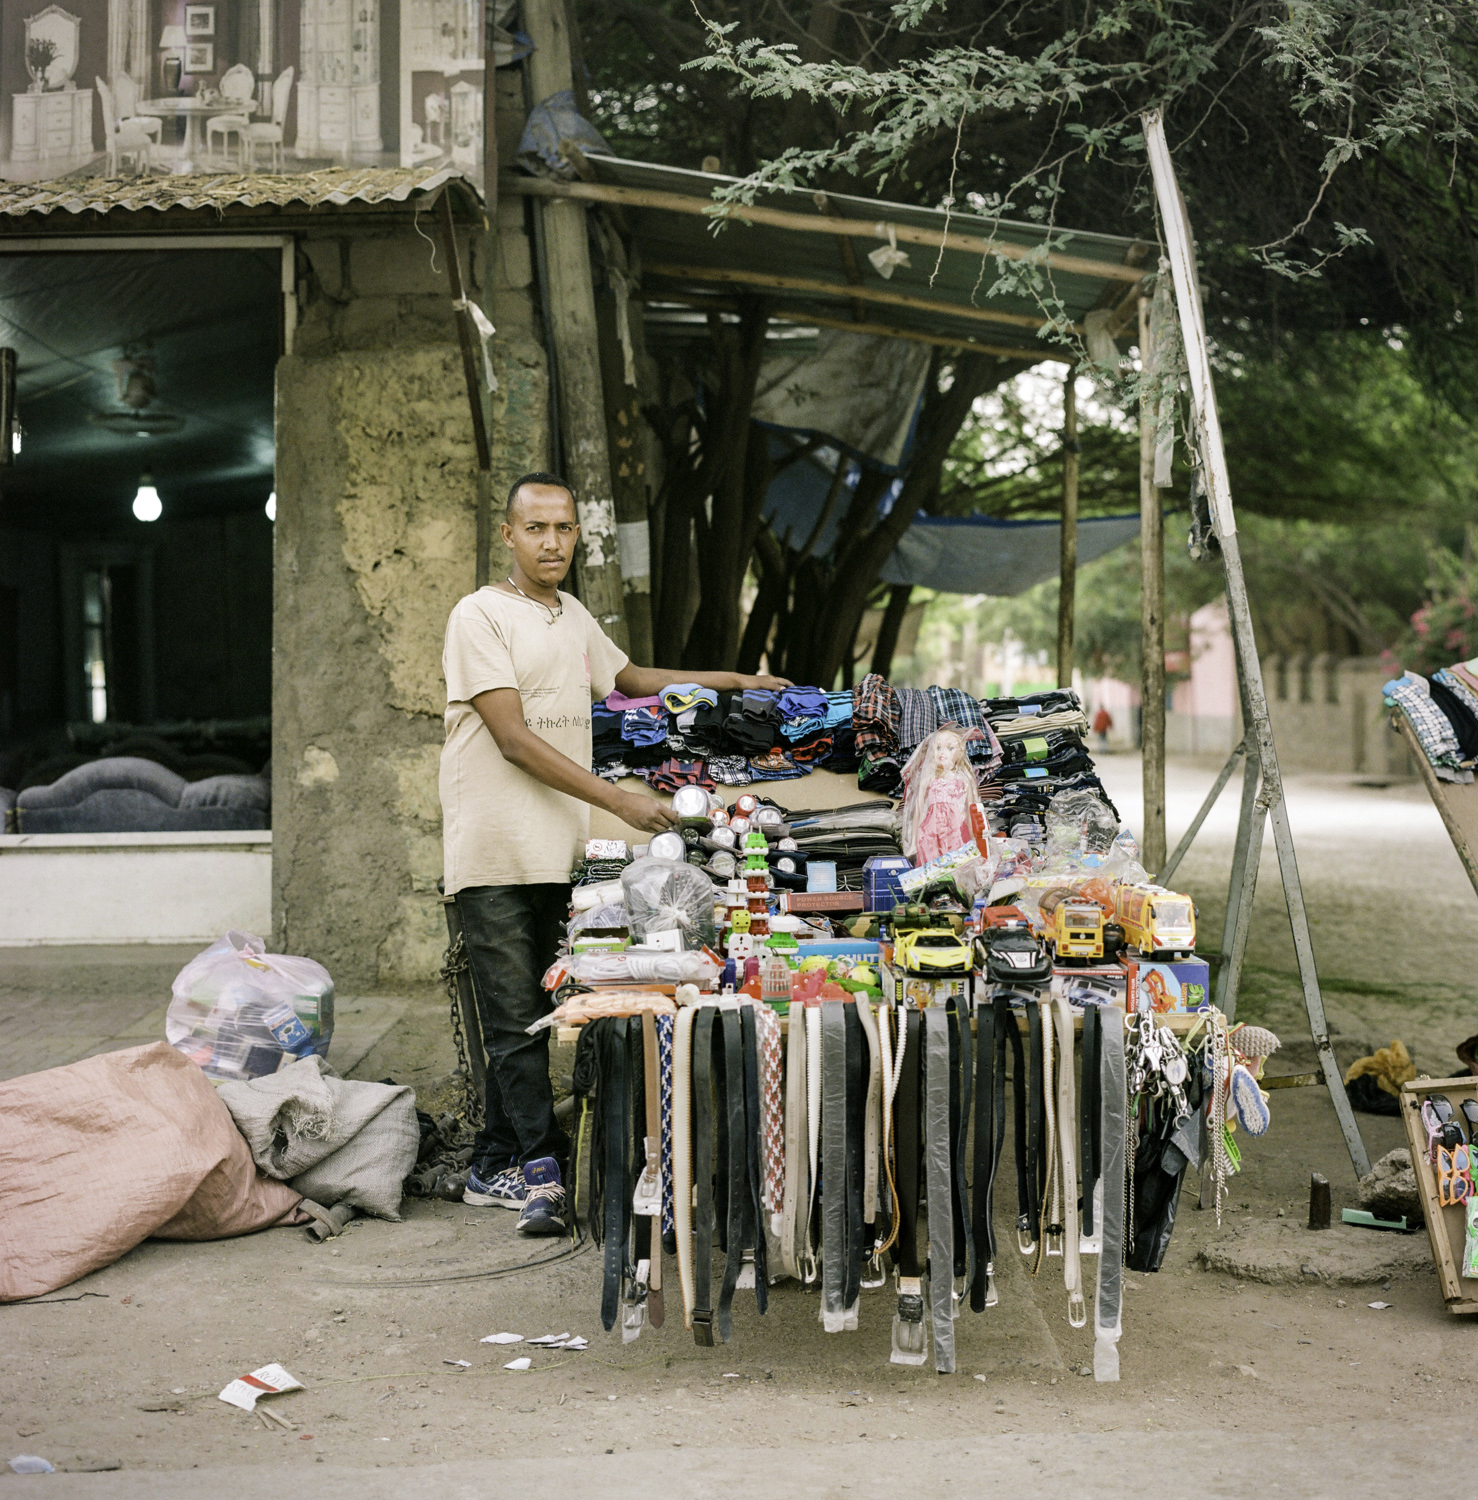 man selling toys and belts on the street in Ethiopia